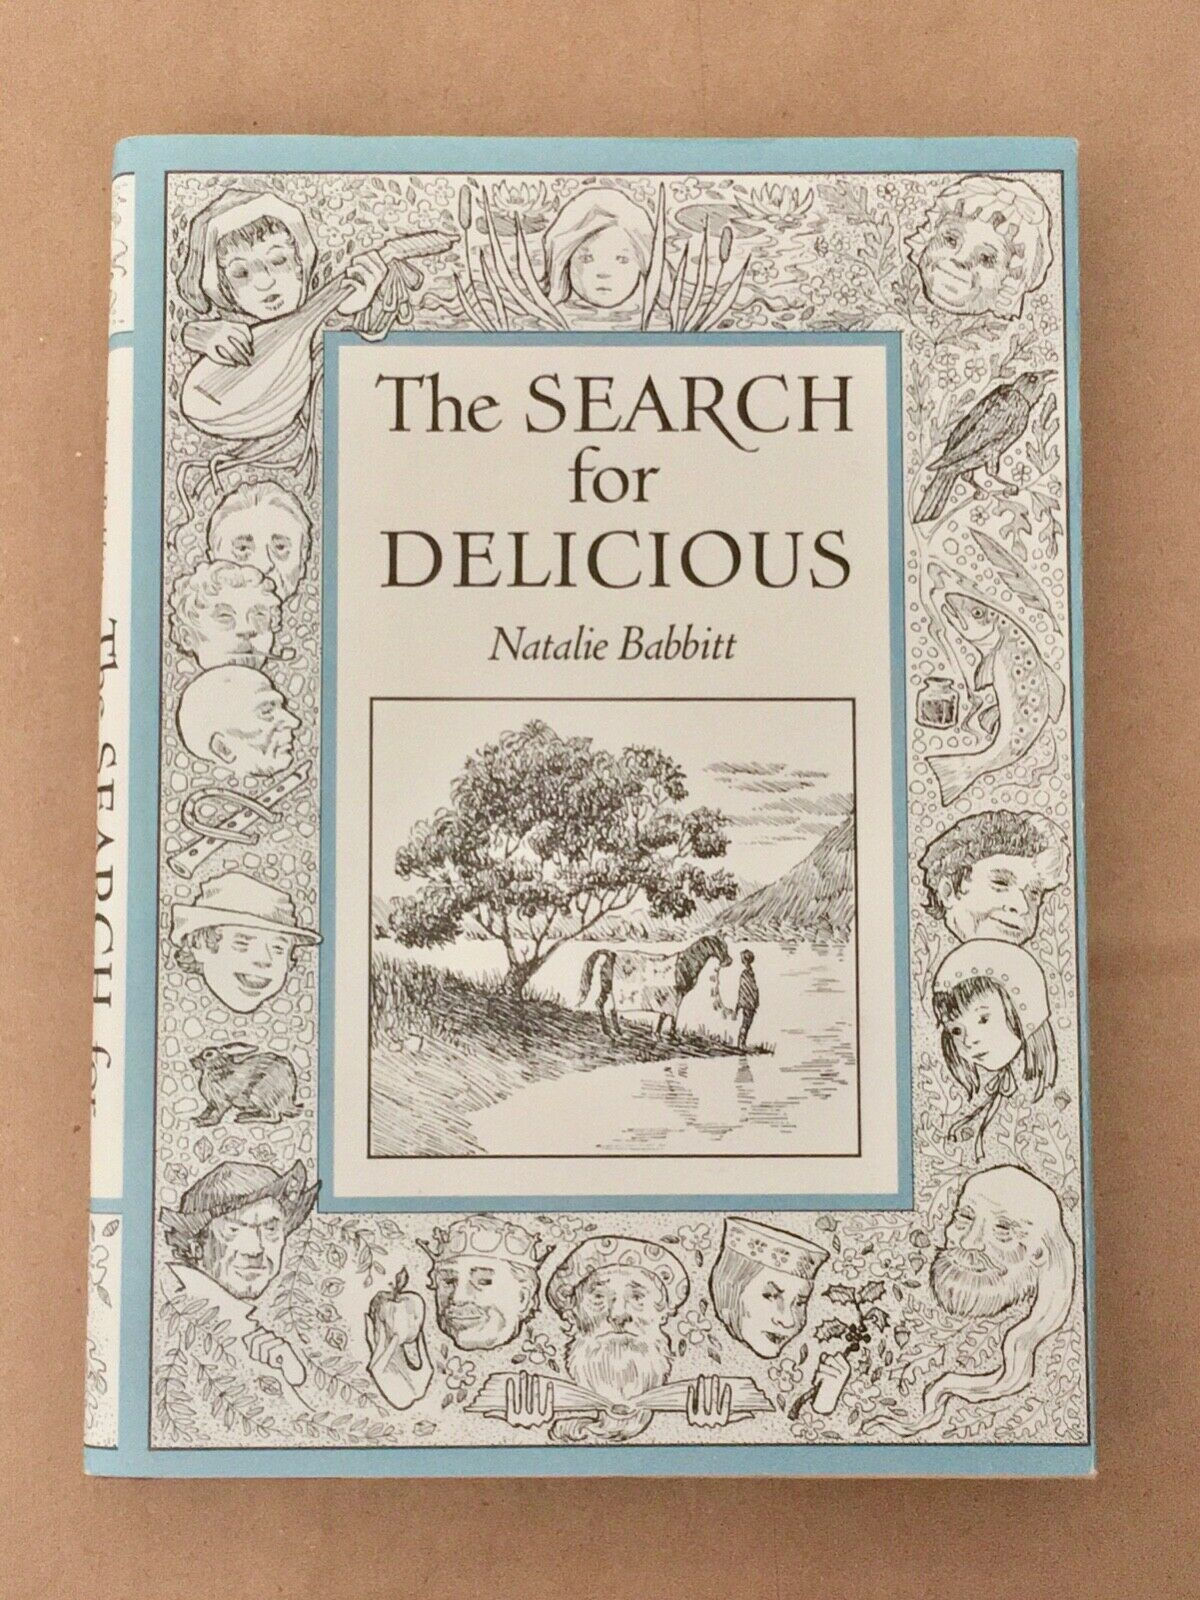 The Search for Delicious by Natalie Babbitt (1969, Hardcover) for sale  online   eBay